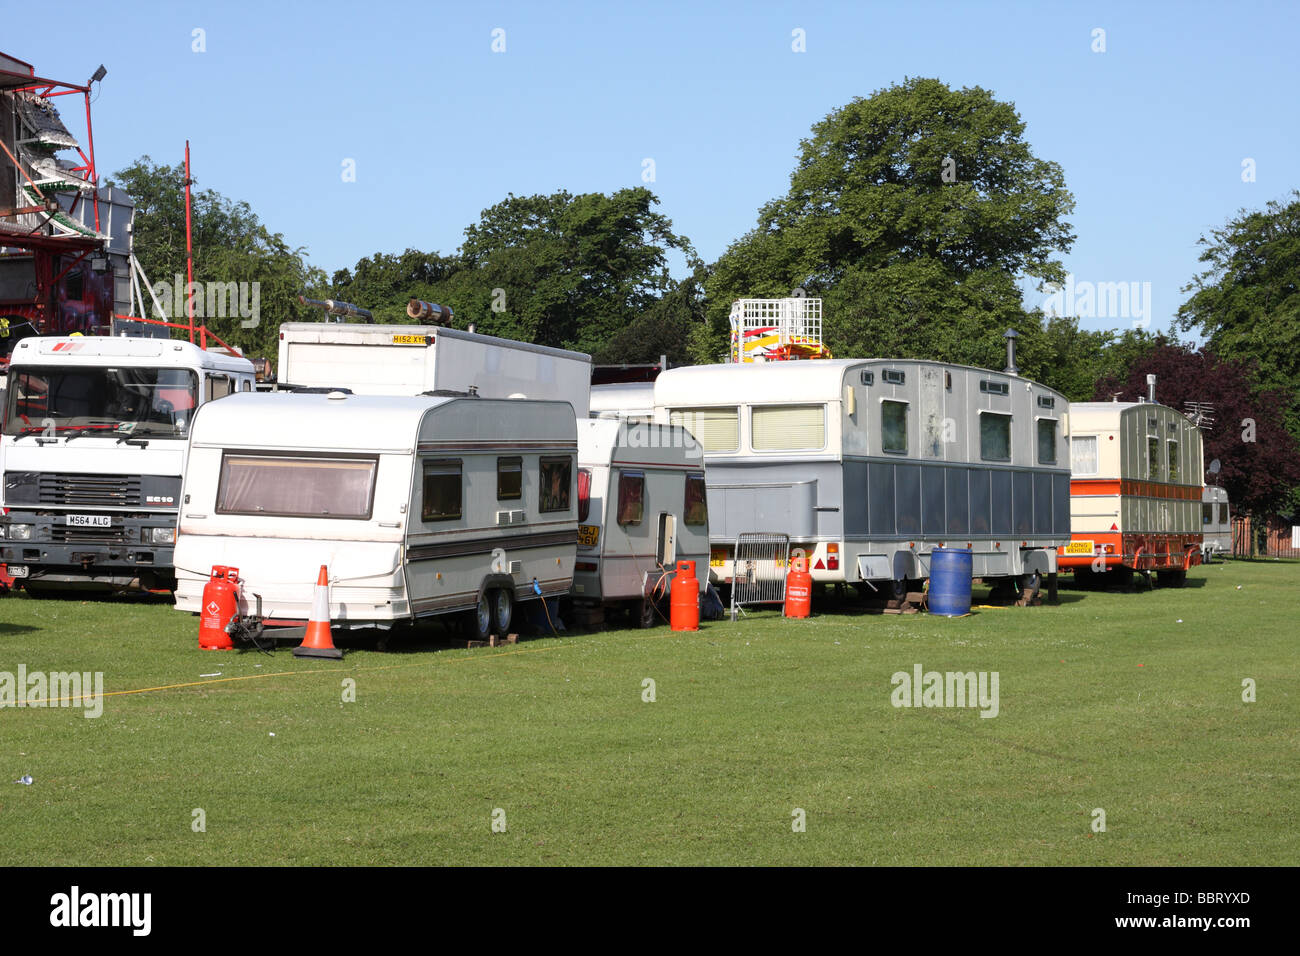 Showmans caravans at a travelling funfair in the U.K.. - Stock Image